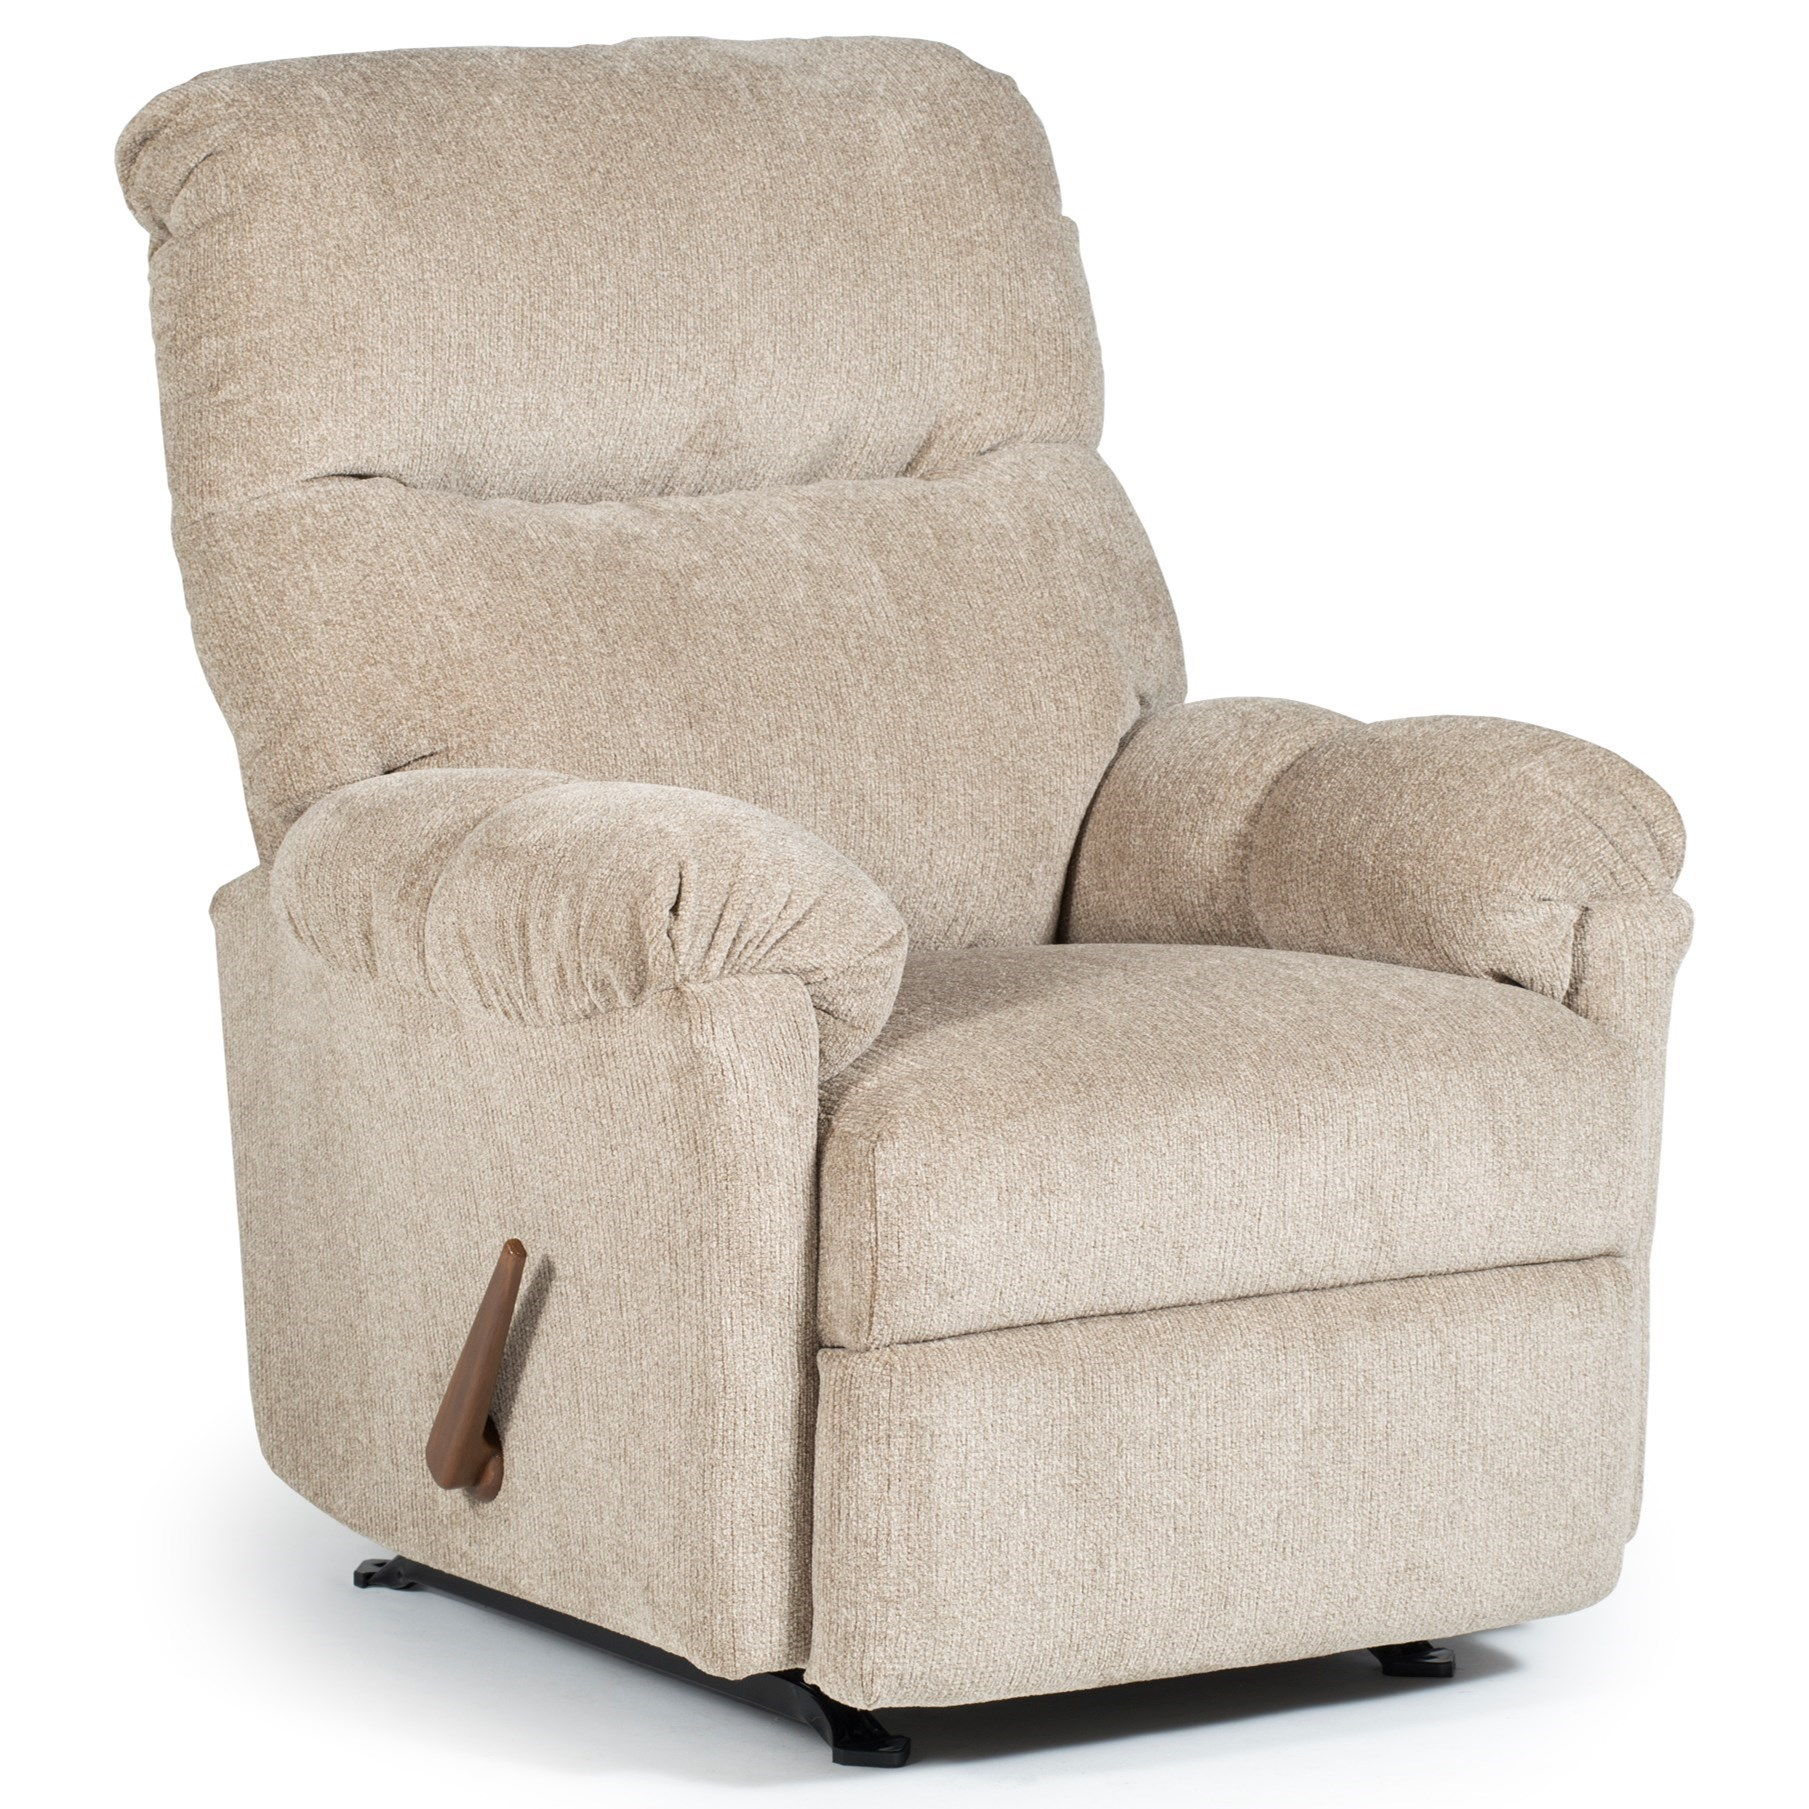 Medium Recliners Balmore Swivel Glider Recliner by Best Home Furnishings at Baer's Furniture